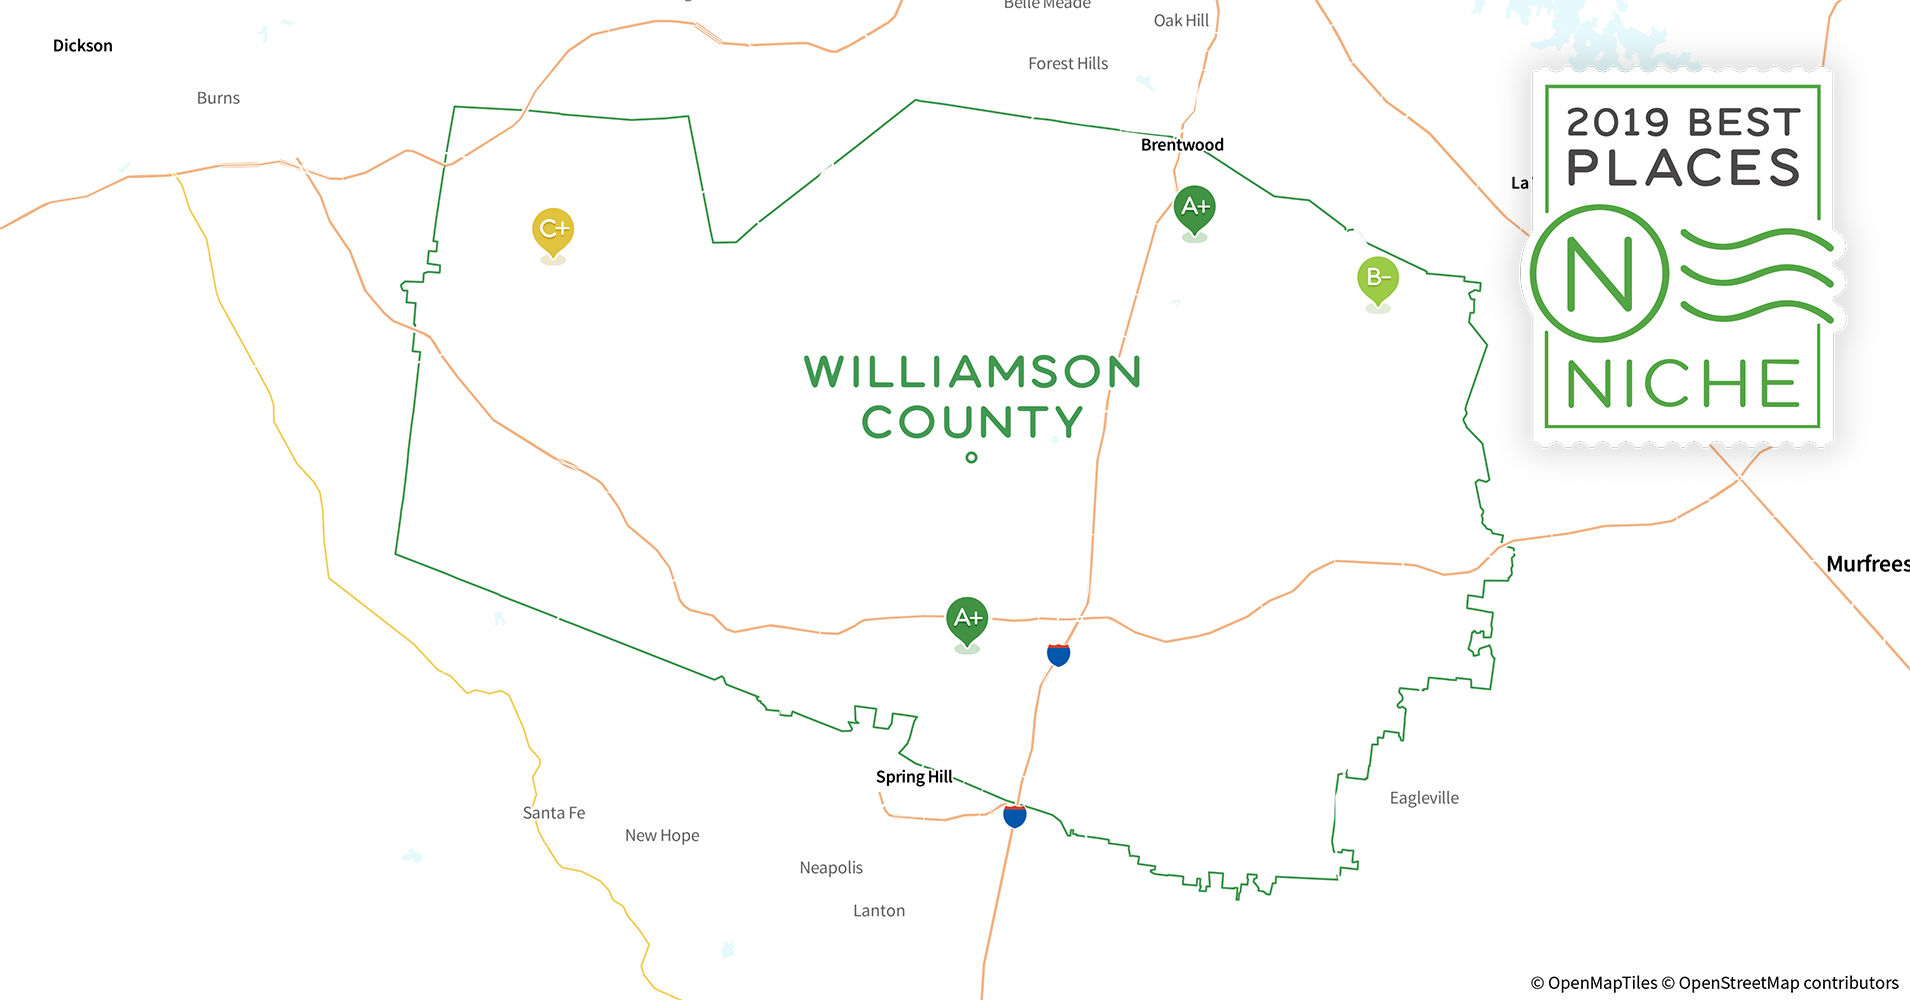 2019 Best Places to Buy a House in Williamson County, TN - Niche